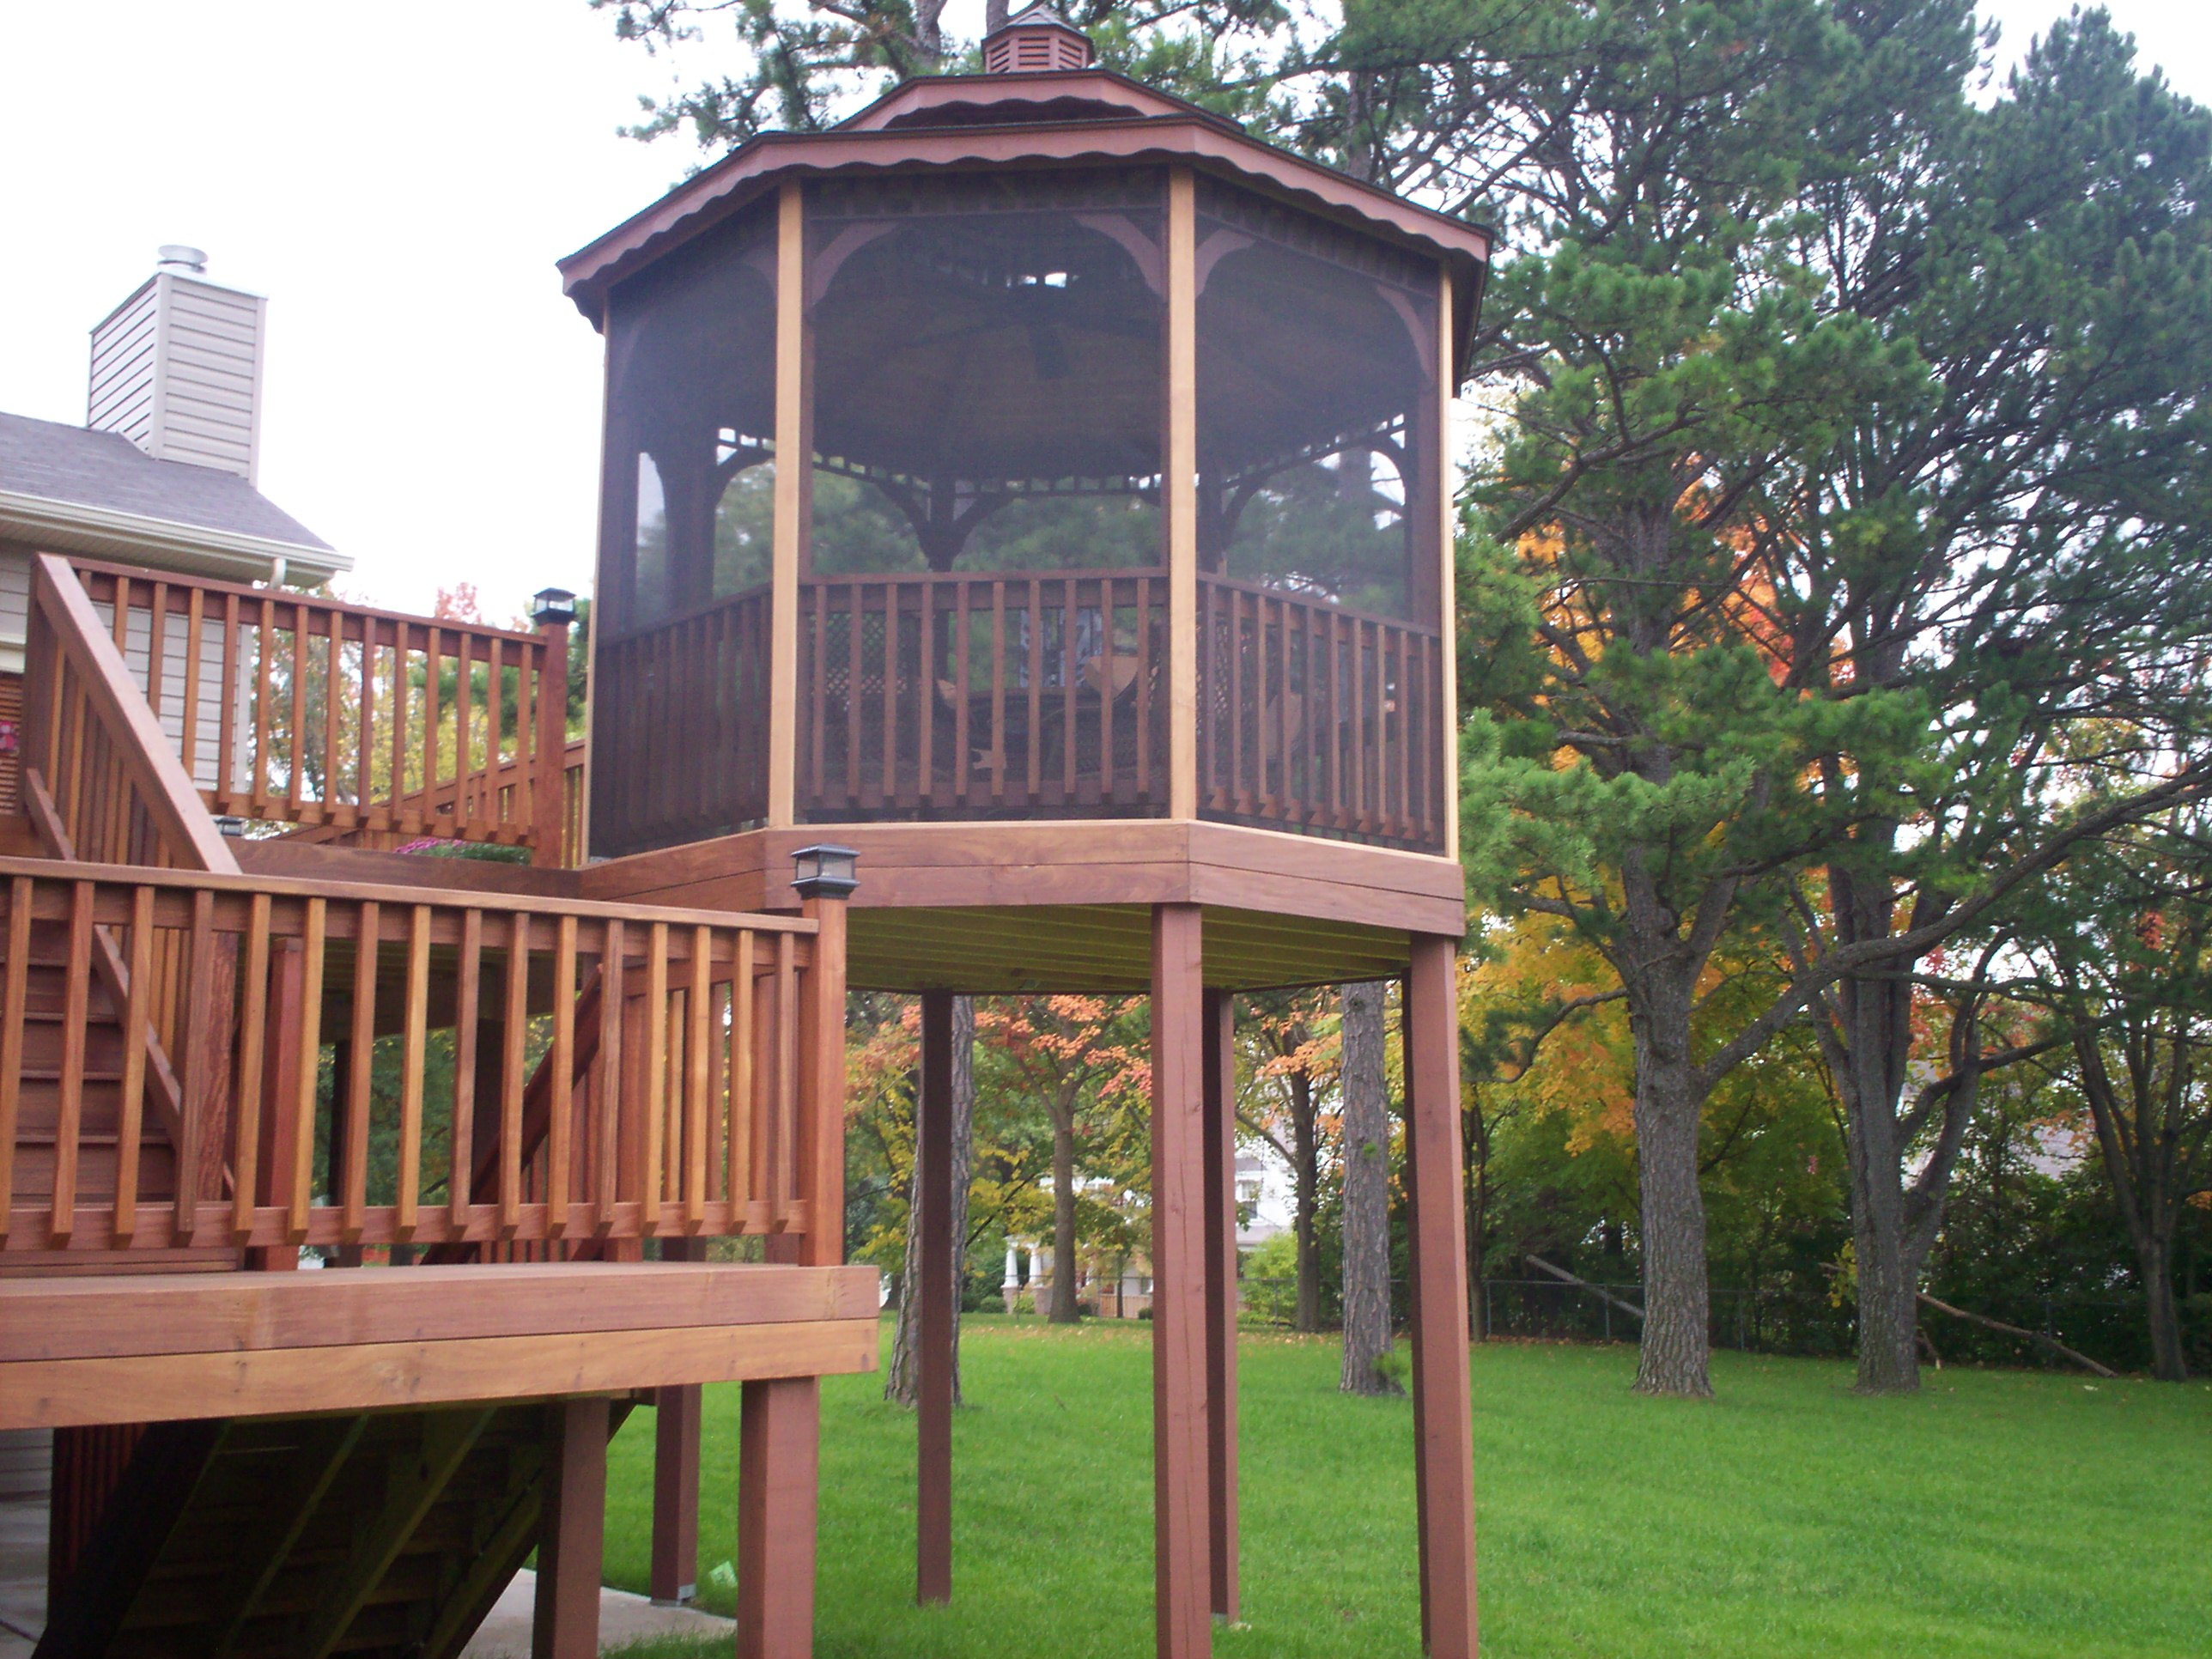 Cheap Gazebos | Screened Gazebo | Screened in Gazebos for Sale